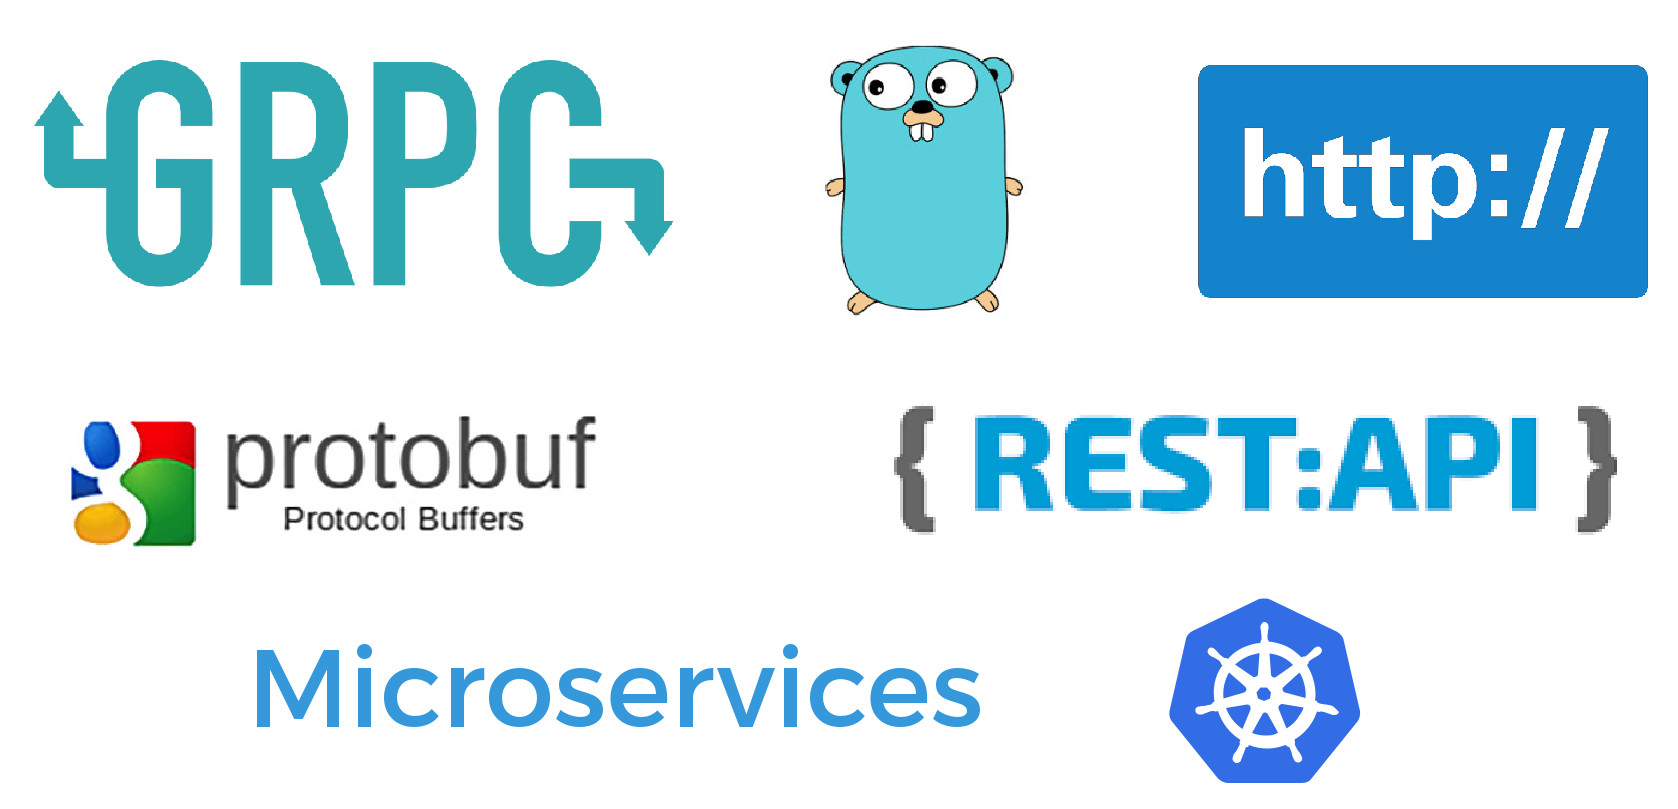 Tutorial, Part 3] How to develop Go gRPC microservice with